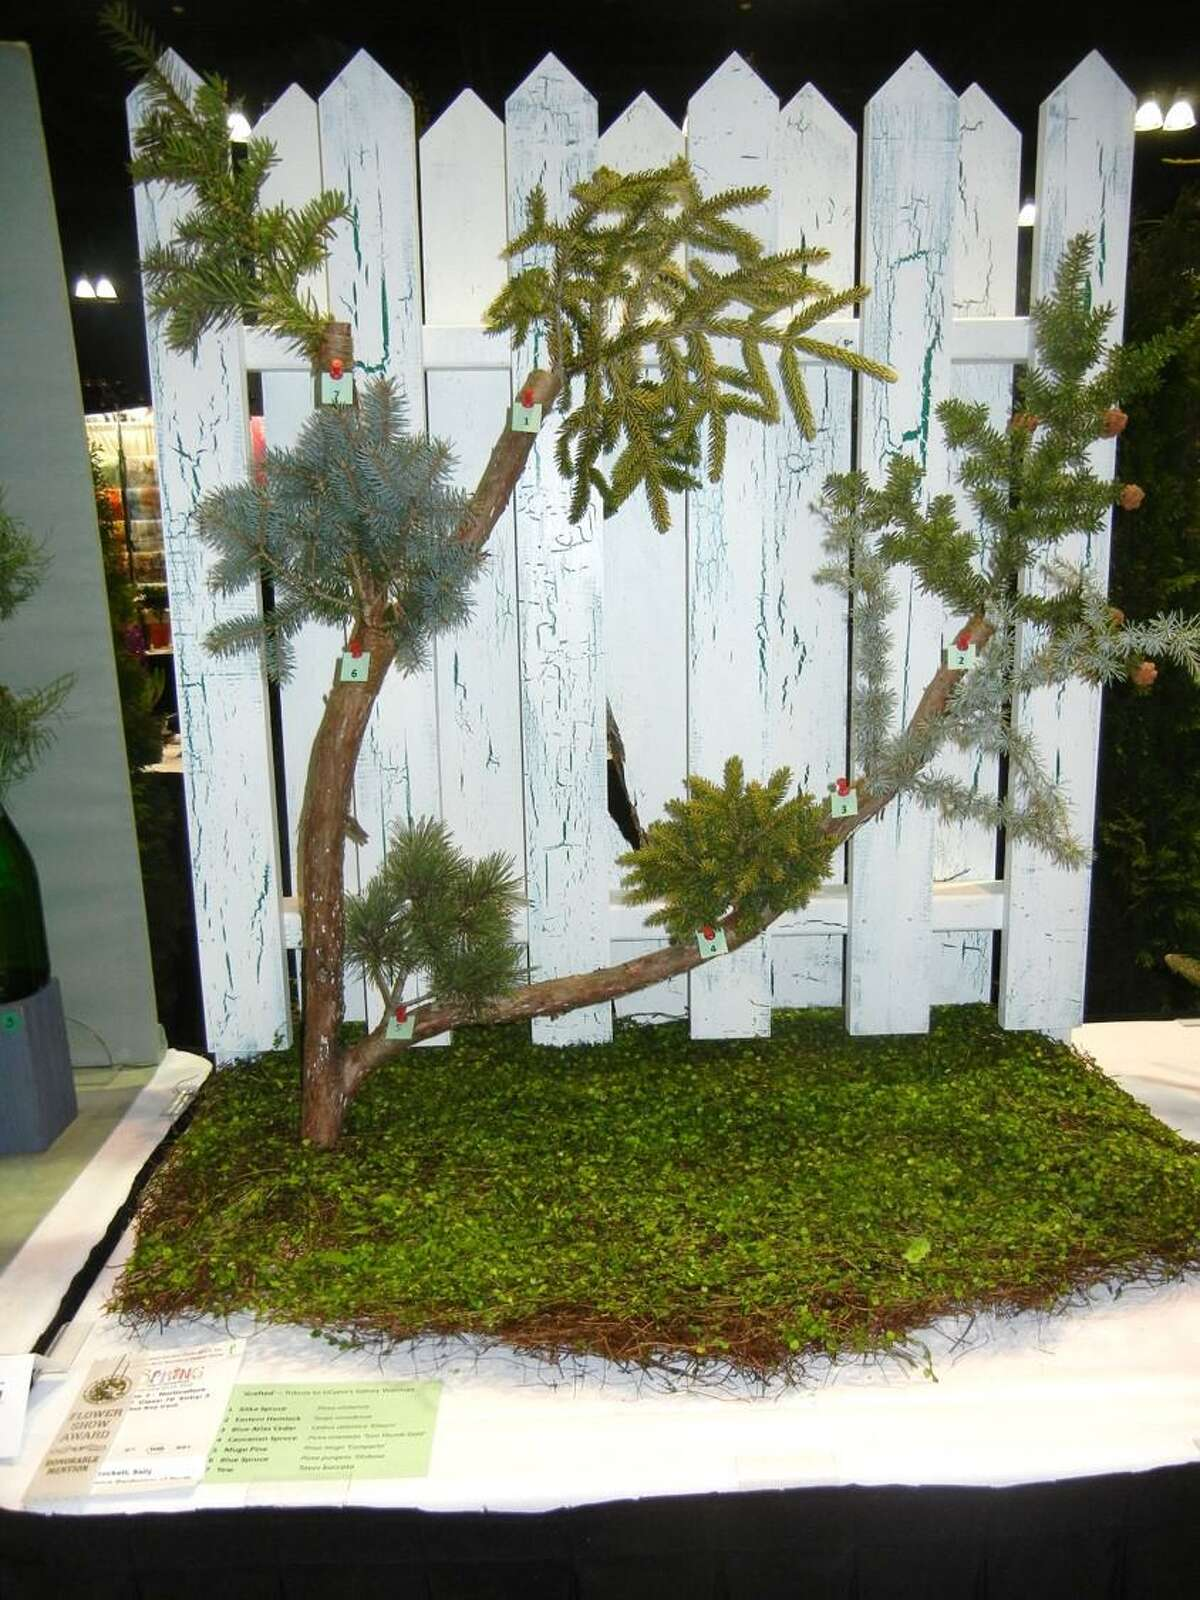 The Daytime Gardeners of North Haven were invited to display an arboreal exhibit at the Federated Garden Clubs of CT Flower Show, held in conjunction with the 39th Annual CT Flower & Garden Show in Hartford. The displays focused on cut needled evergreens and required a minimum of seven cut branches from trees grown by two or more club members. The branches were to be displayed in an artistic manner. A cedar branch was used as the support for the displayed samples and a picket fence was built to provide a backdrop that would accent the exhibited samples. The branches displayed were from Sitka spruce, Eastern hemlock, blue Atlas cedar, Caucasian spruce, mugo pine, blue spruce, and yew.